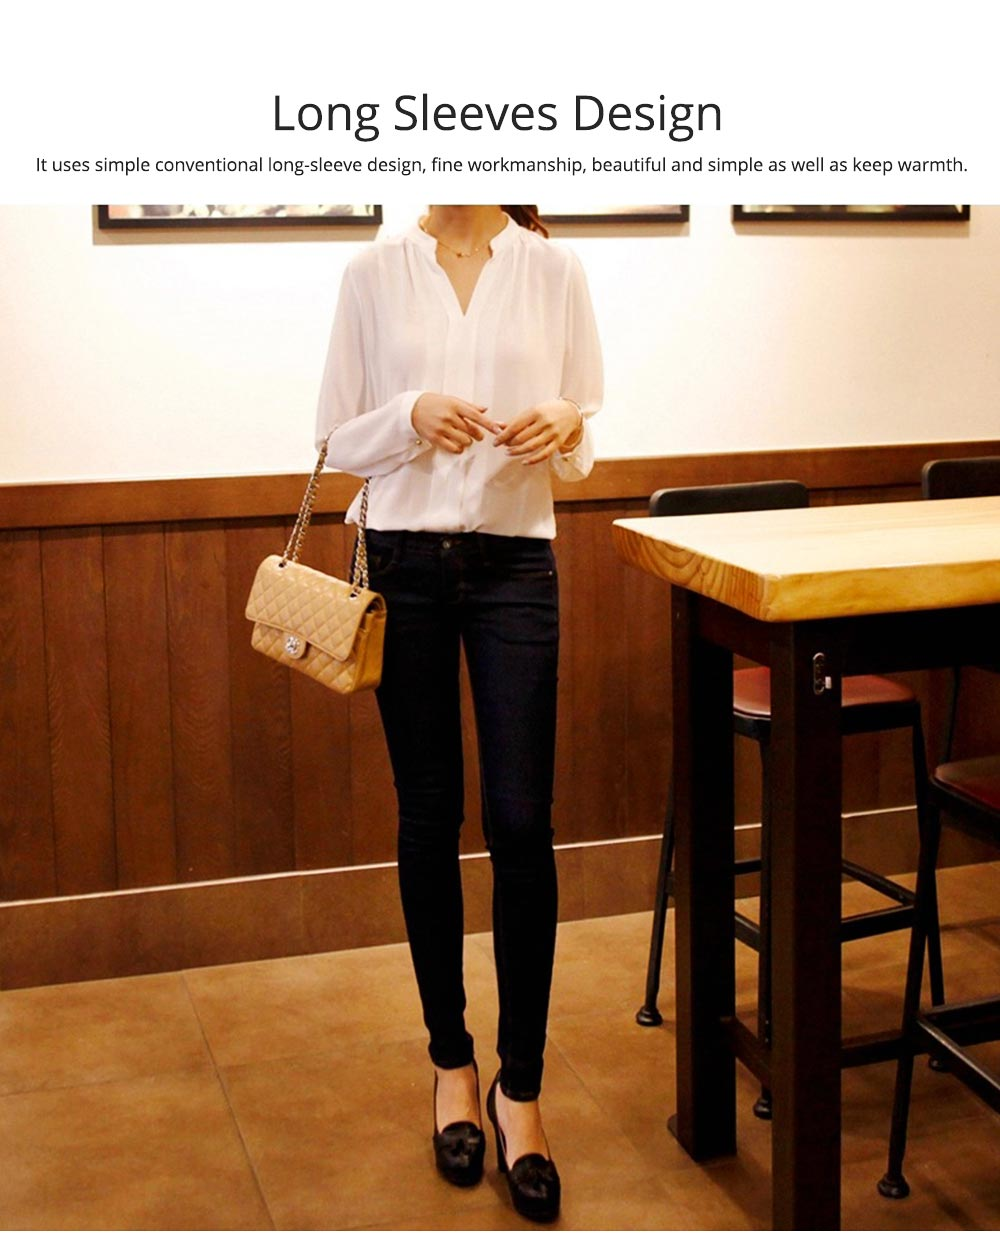 Lady's Chiffon Shirt with Long Sleeves, Base Shirt for Spring, Slim White Shirt for Office, Casual 3